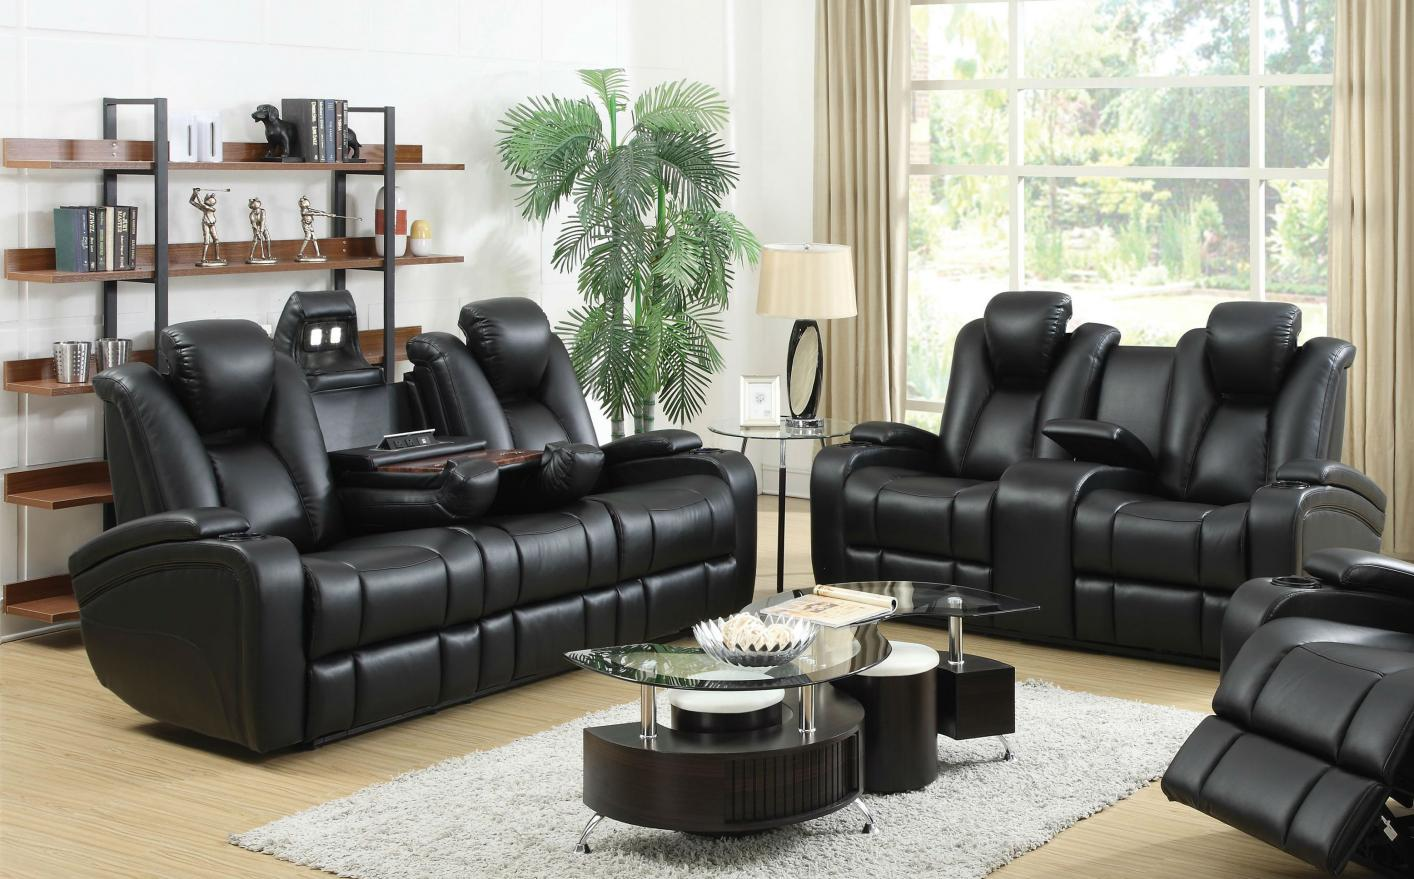 Black Leather Power Reclining Sofa and Loveseat Set & Black Leather Power Reclining Sofa and Loveseat Set - Steal-A-Sofa ... islam-shia.org